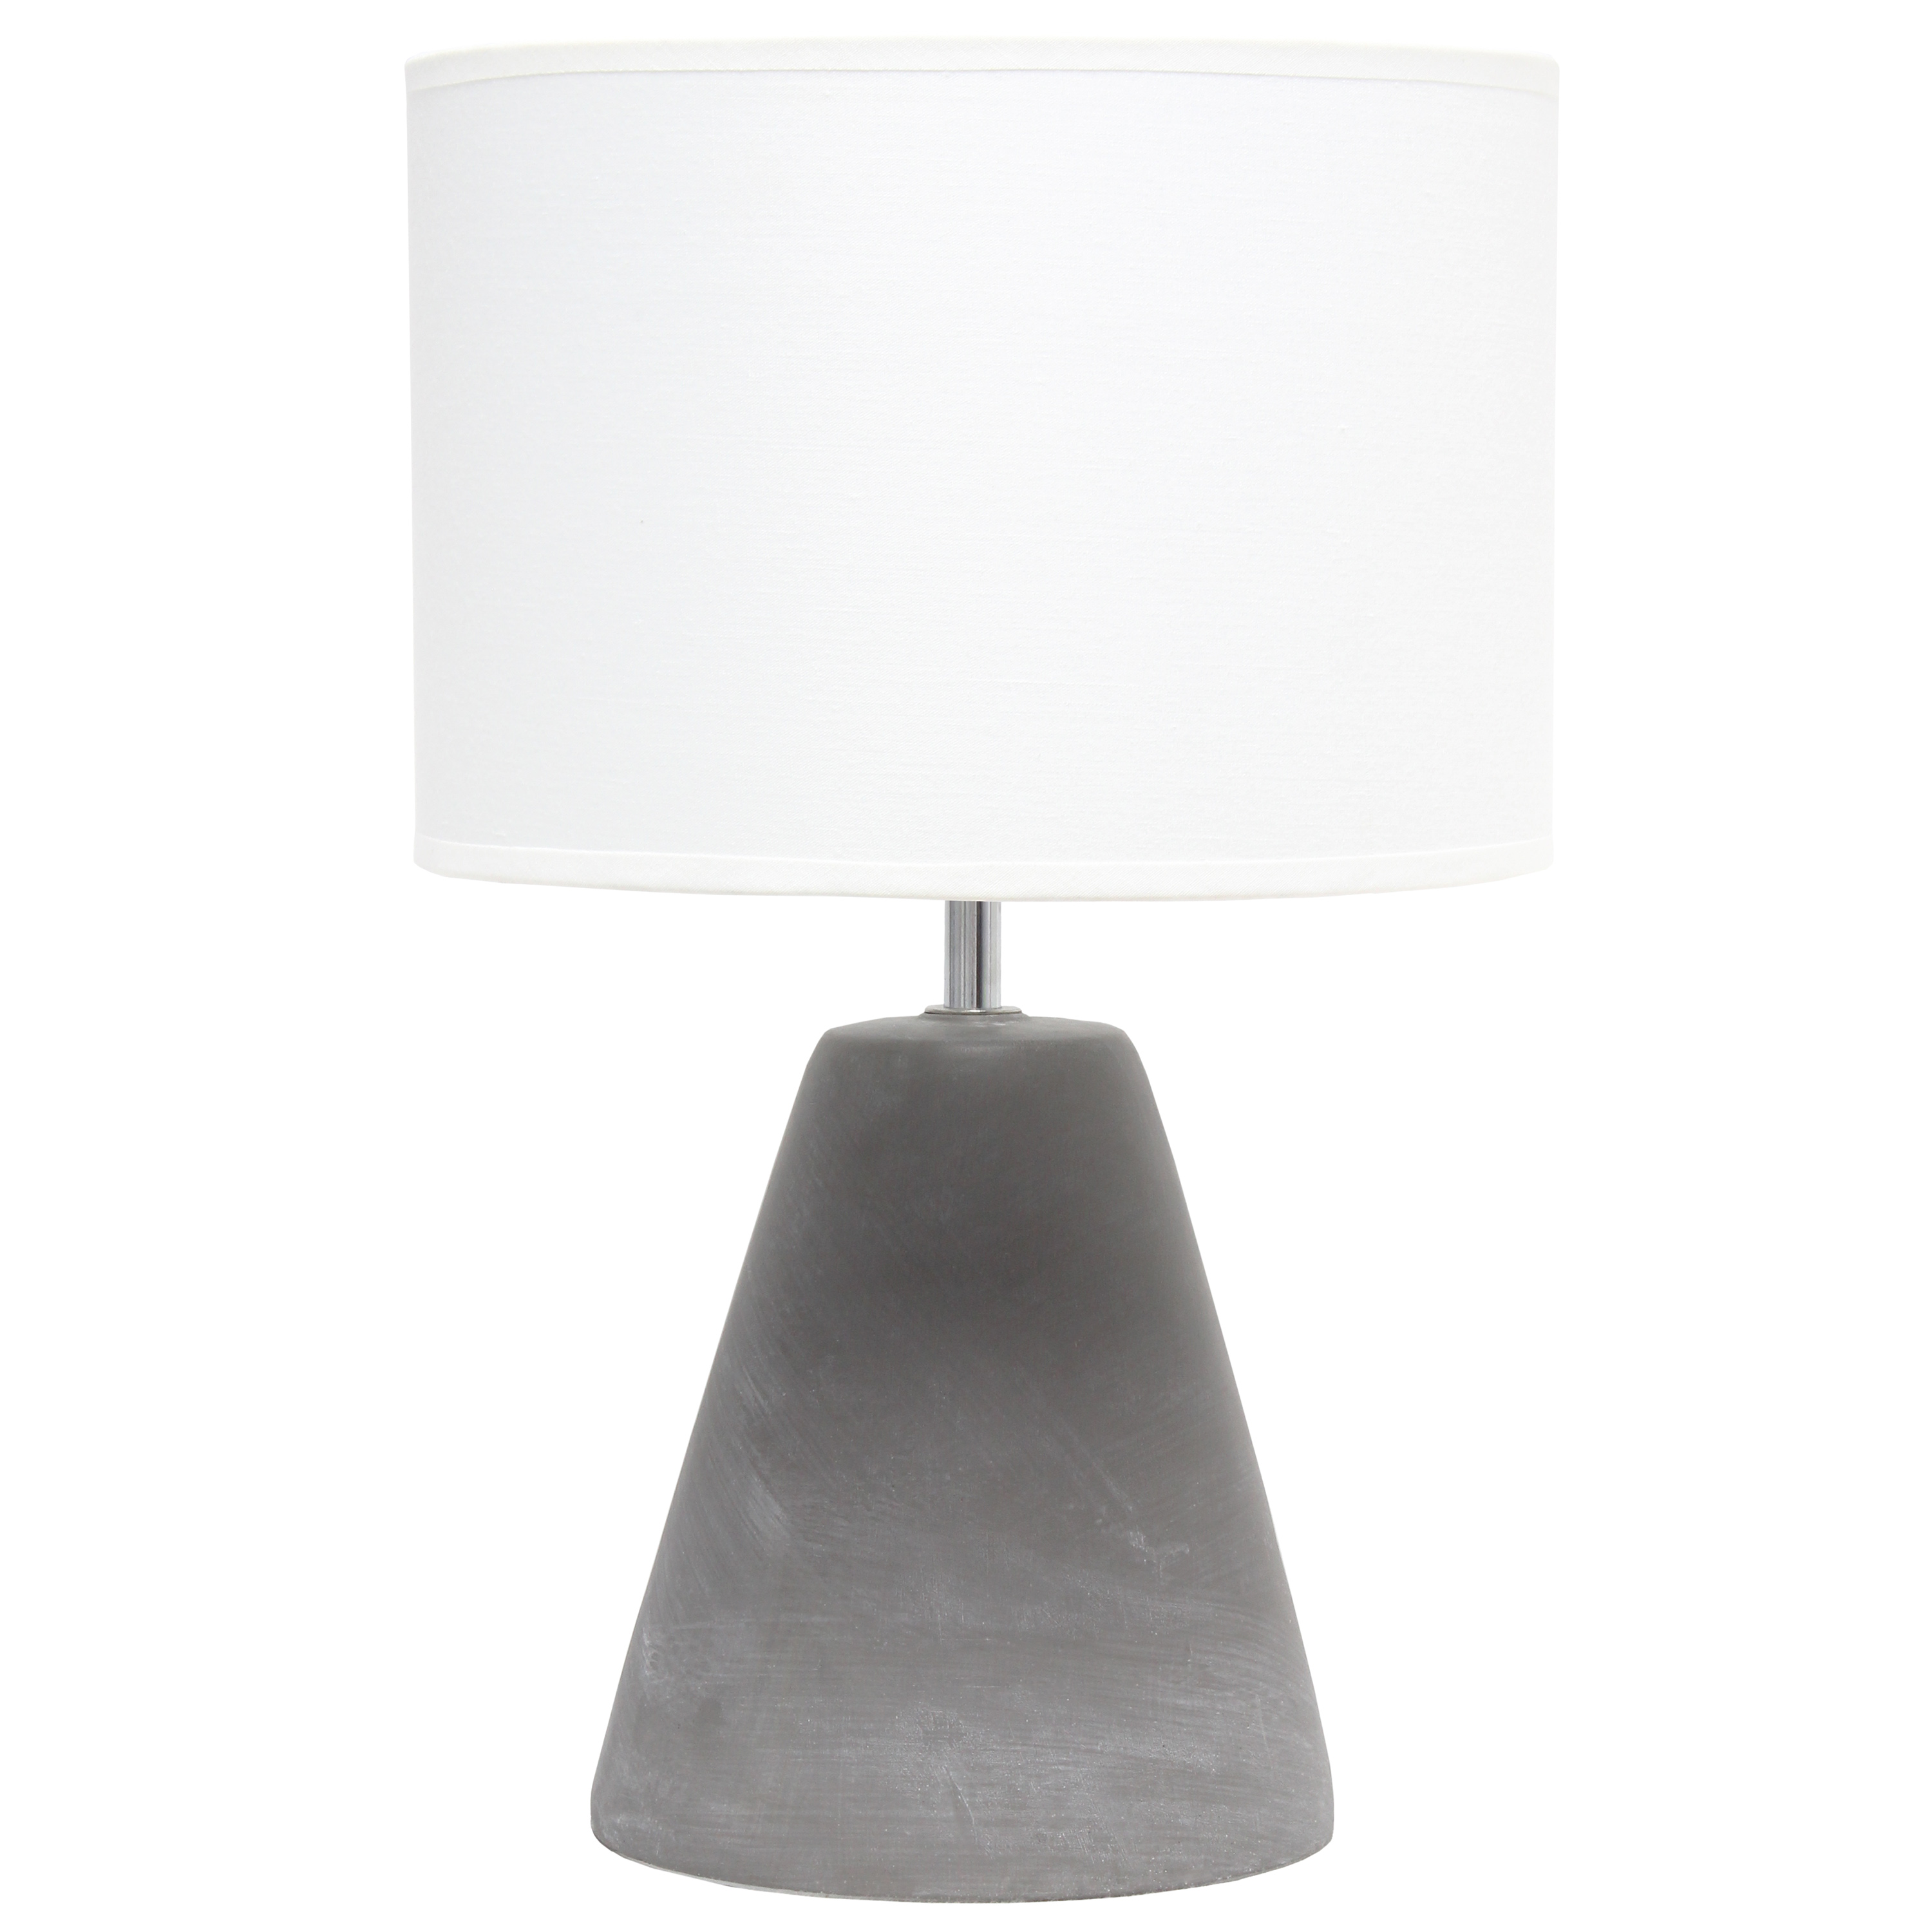 Simple Designs Pinnacle Concrete Table Lamp, White